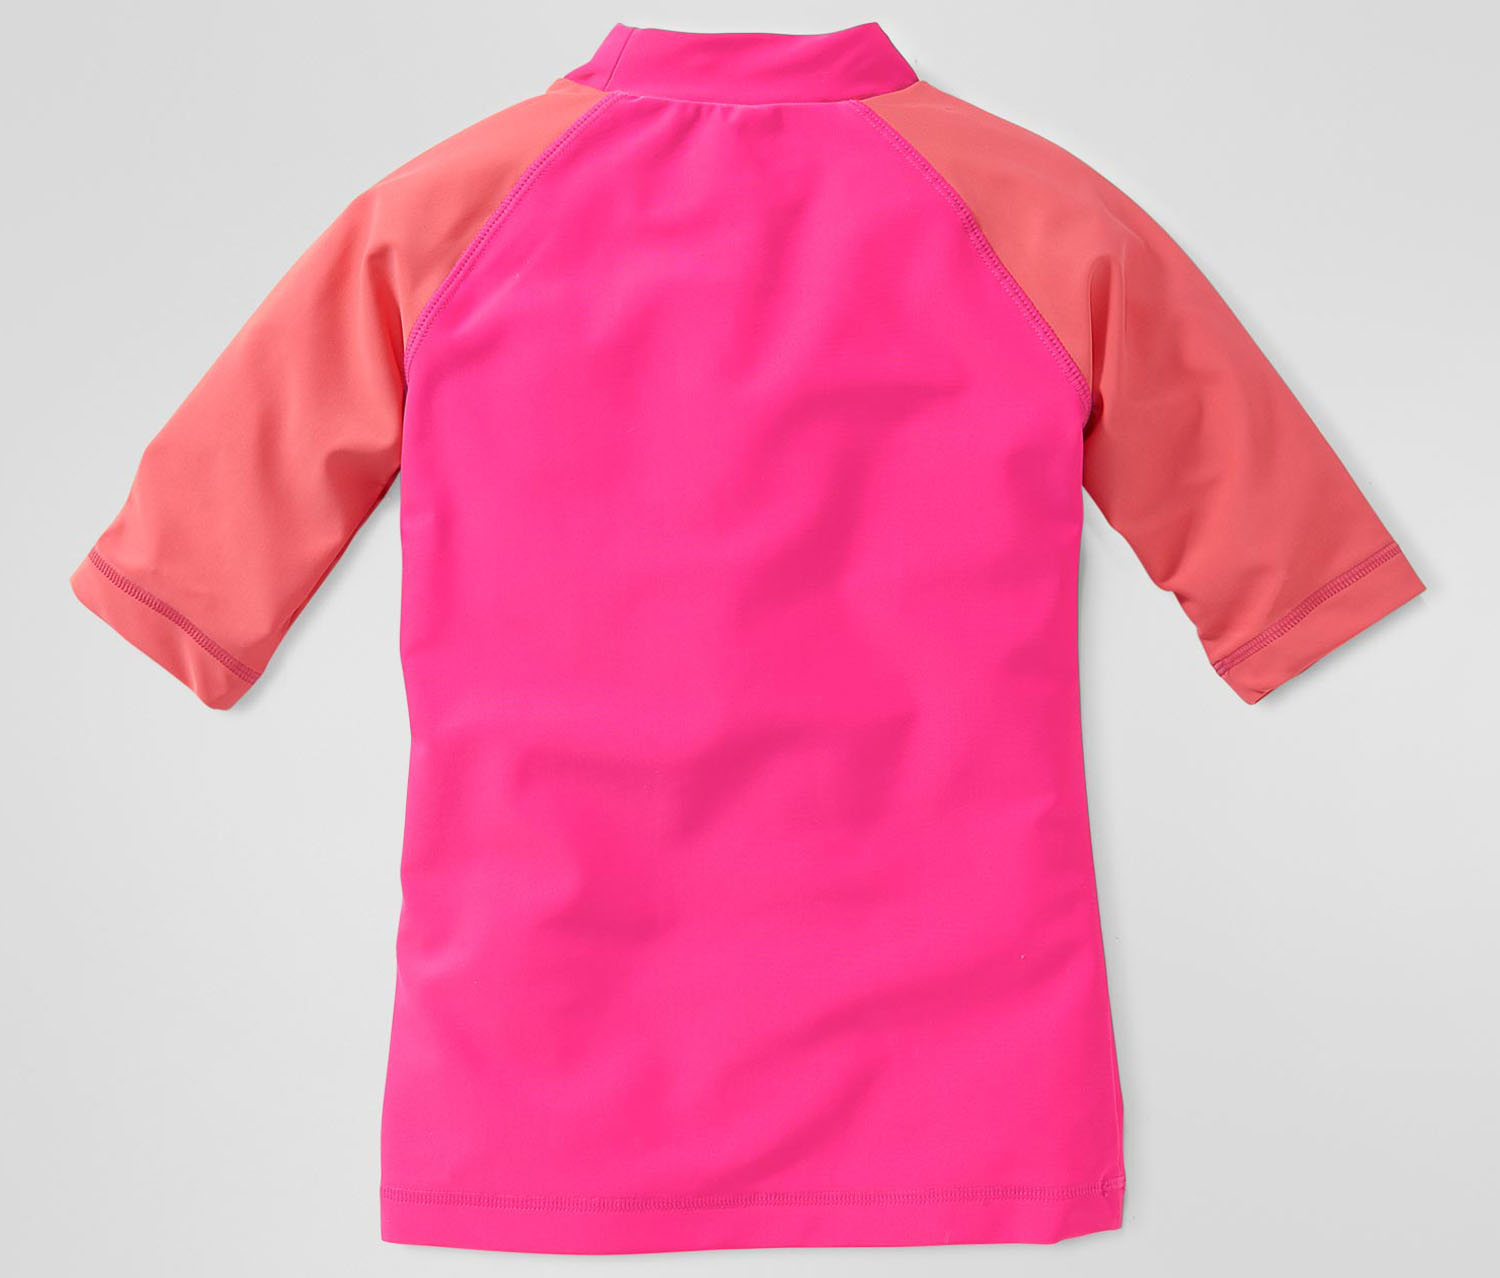 Girl 39 S Uv Protection Shirt Pink Brands For Less